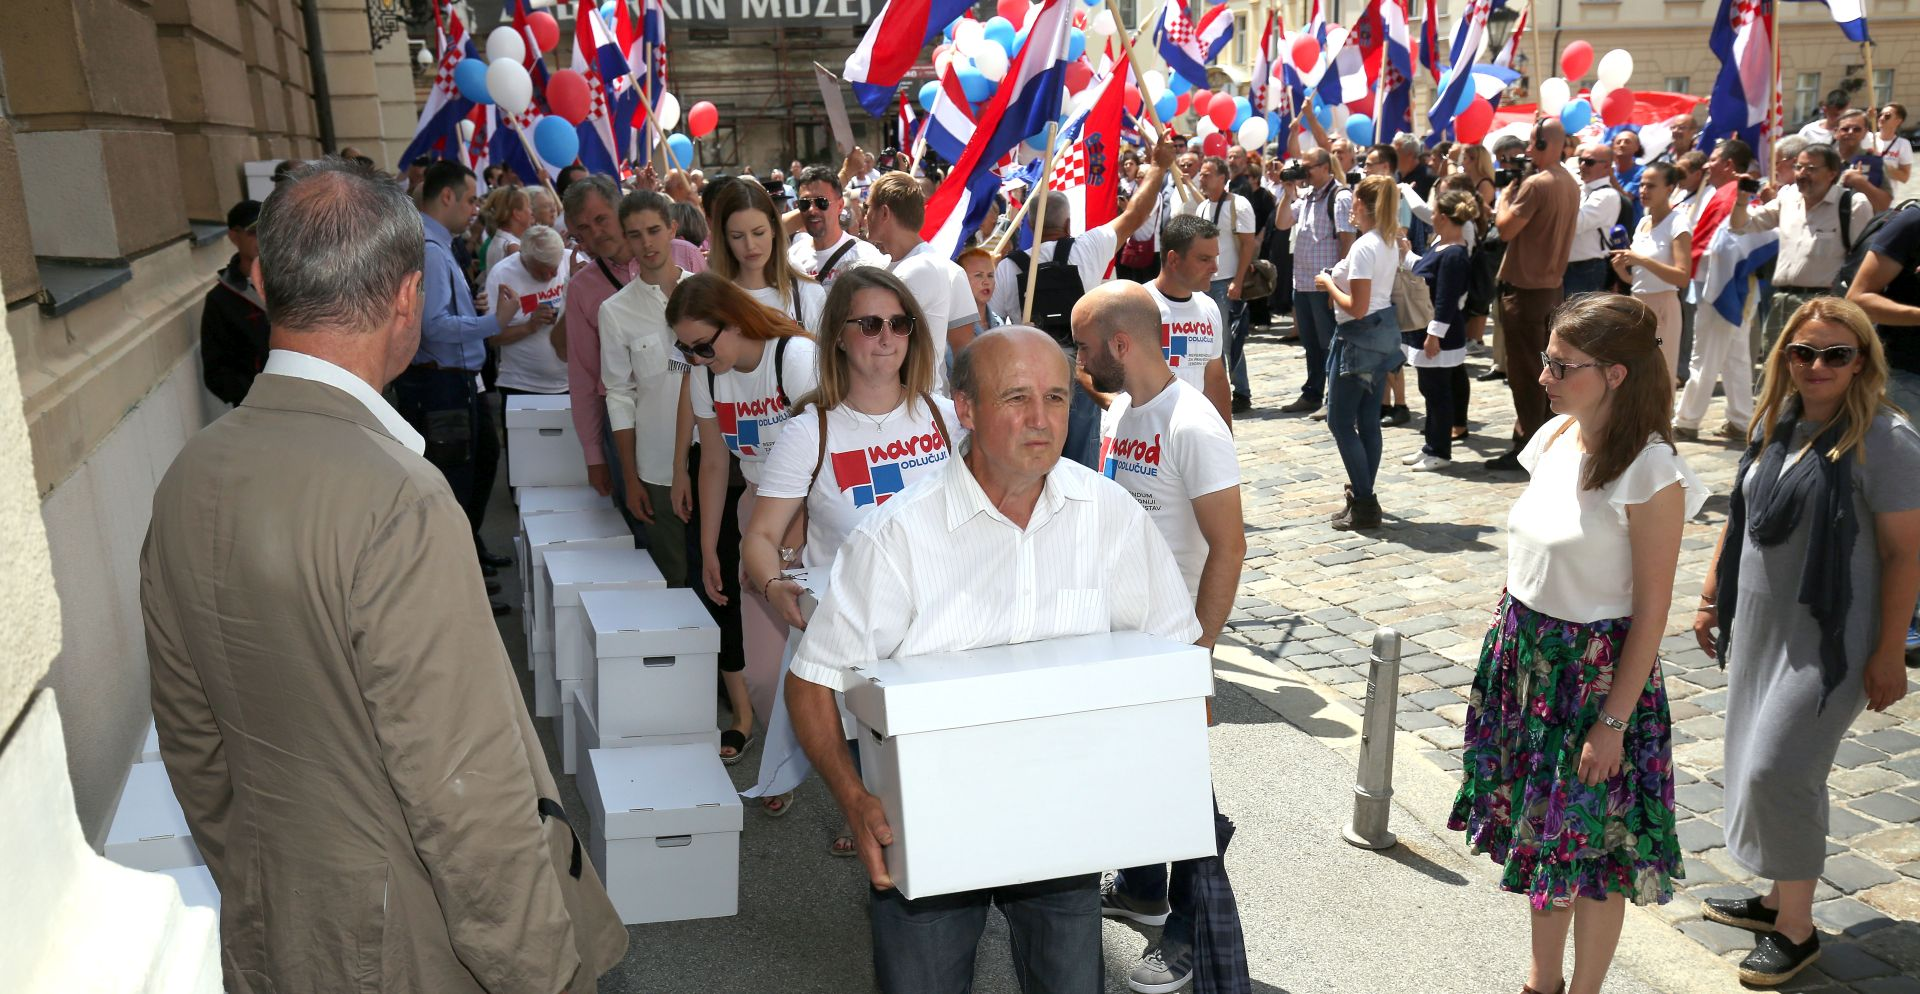 Croatia: 'The people decide' submit petition to parliament